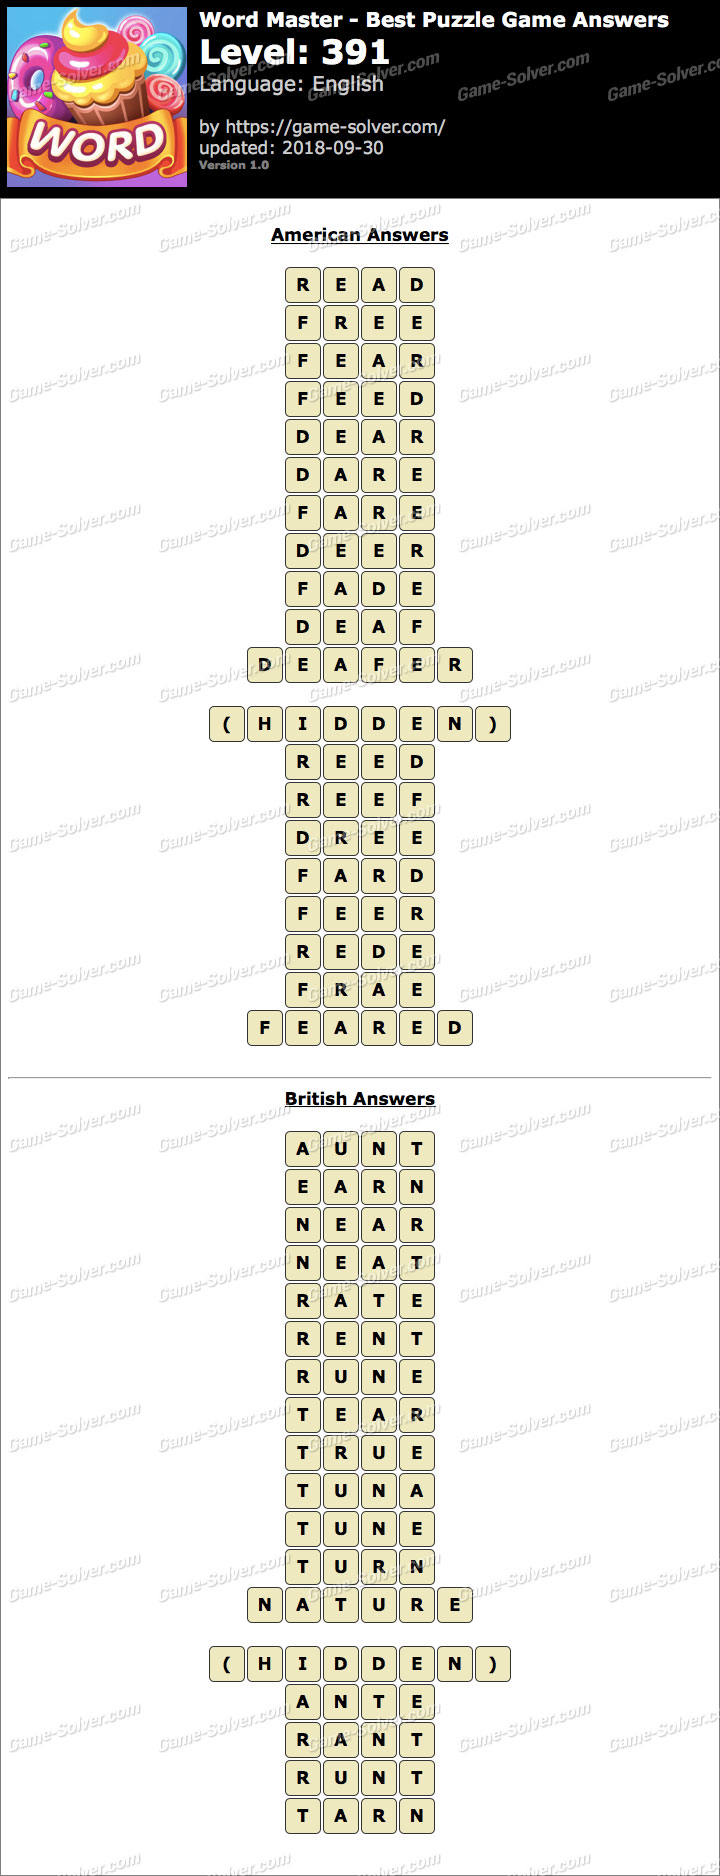 Word Master-Best Puzzle Game Level 391 Answers